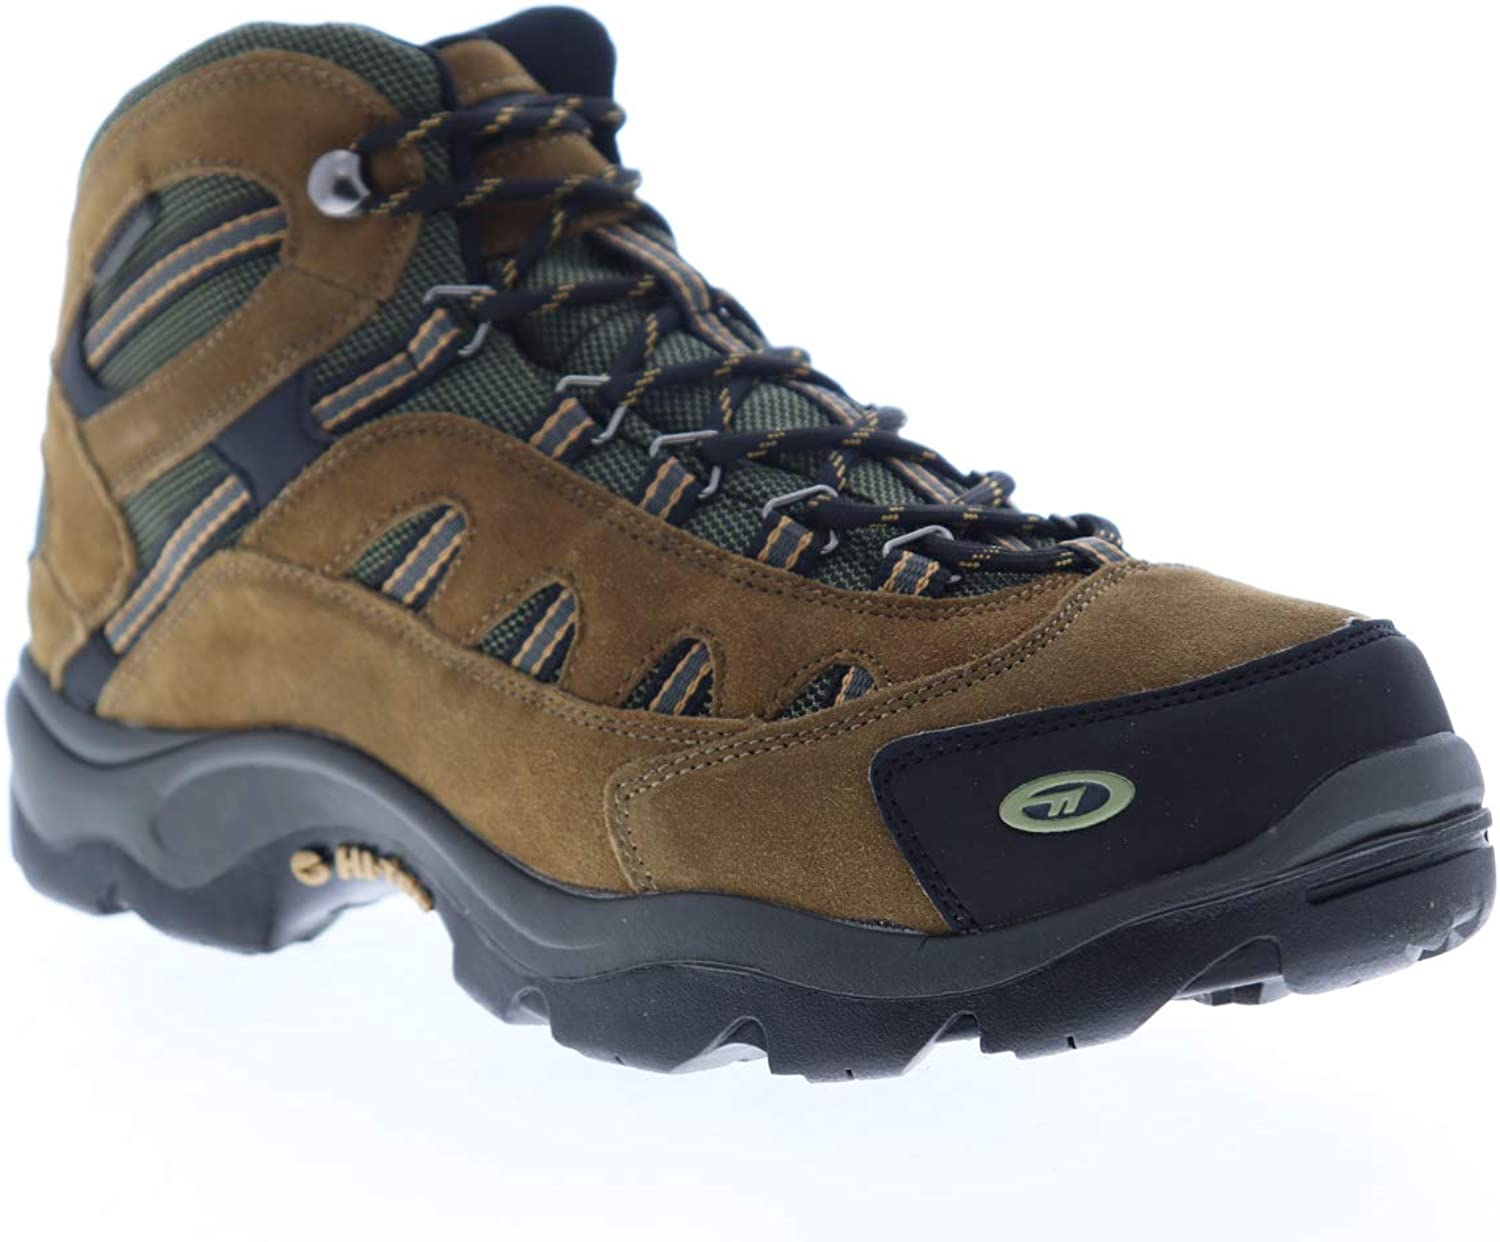 HI-TEC Defiance MID WP Bone Brown Mustard